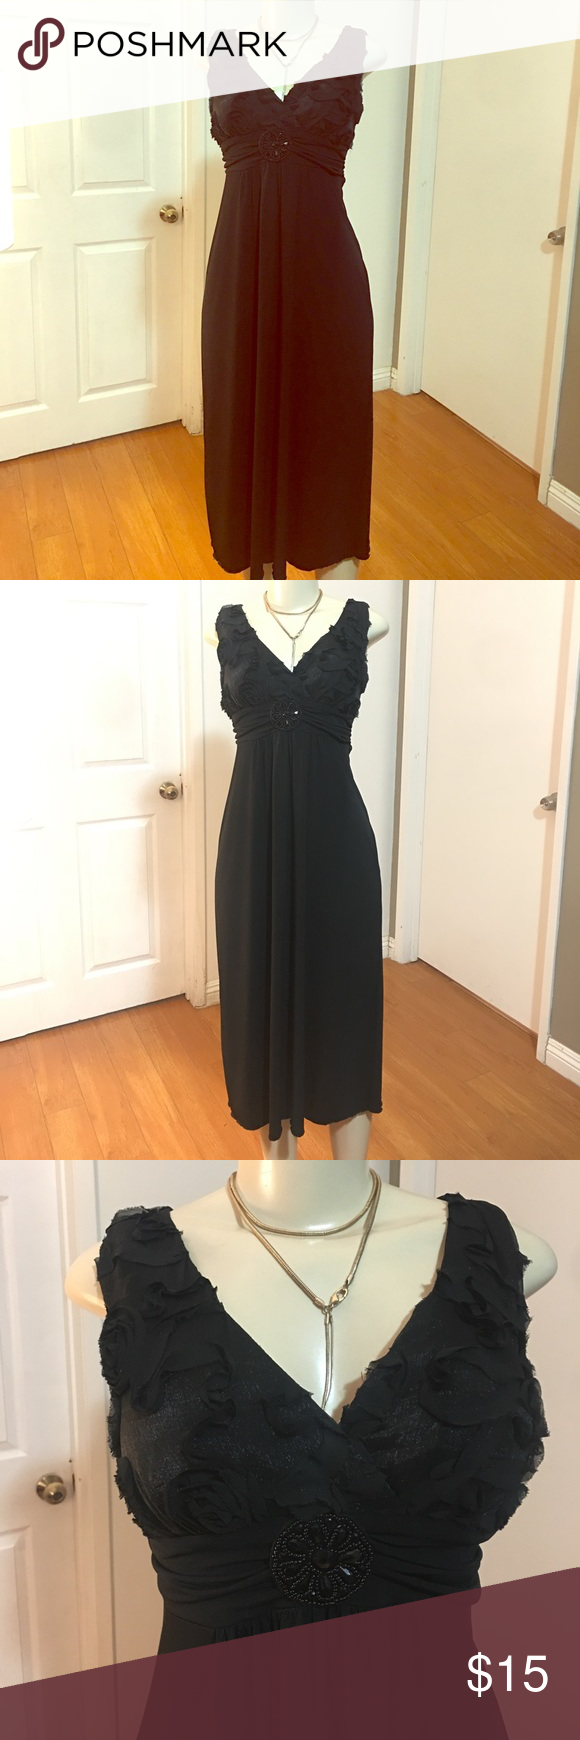 Deep V Neck Party Dress Dress is in very good condition. Size 8. En focus brand. Not lined but doesn't need lining. Light weight. Polyester/spandex blend fabric. Dress doesn't have hem done but doesn't need it. Measurements: Chest 17 inches, waist 14.5 inches, length 42.5 inches. Enfocus Dresses Midi